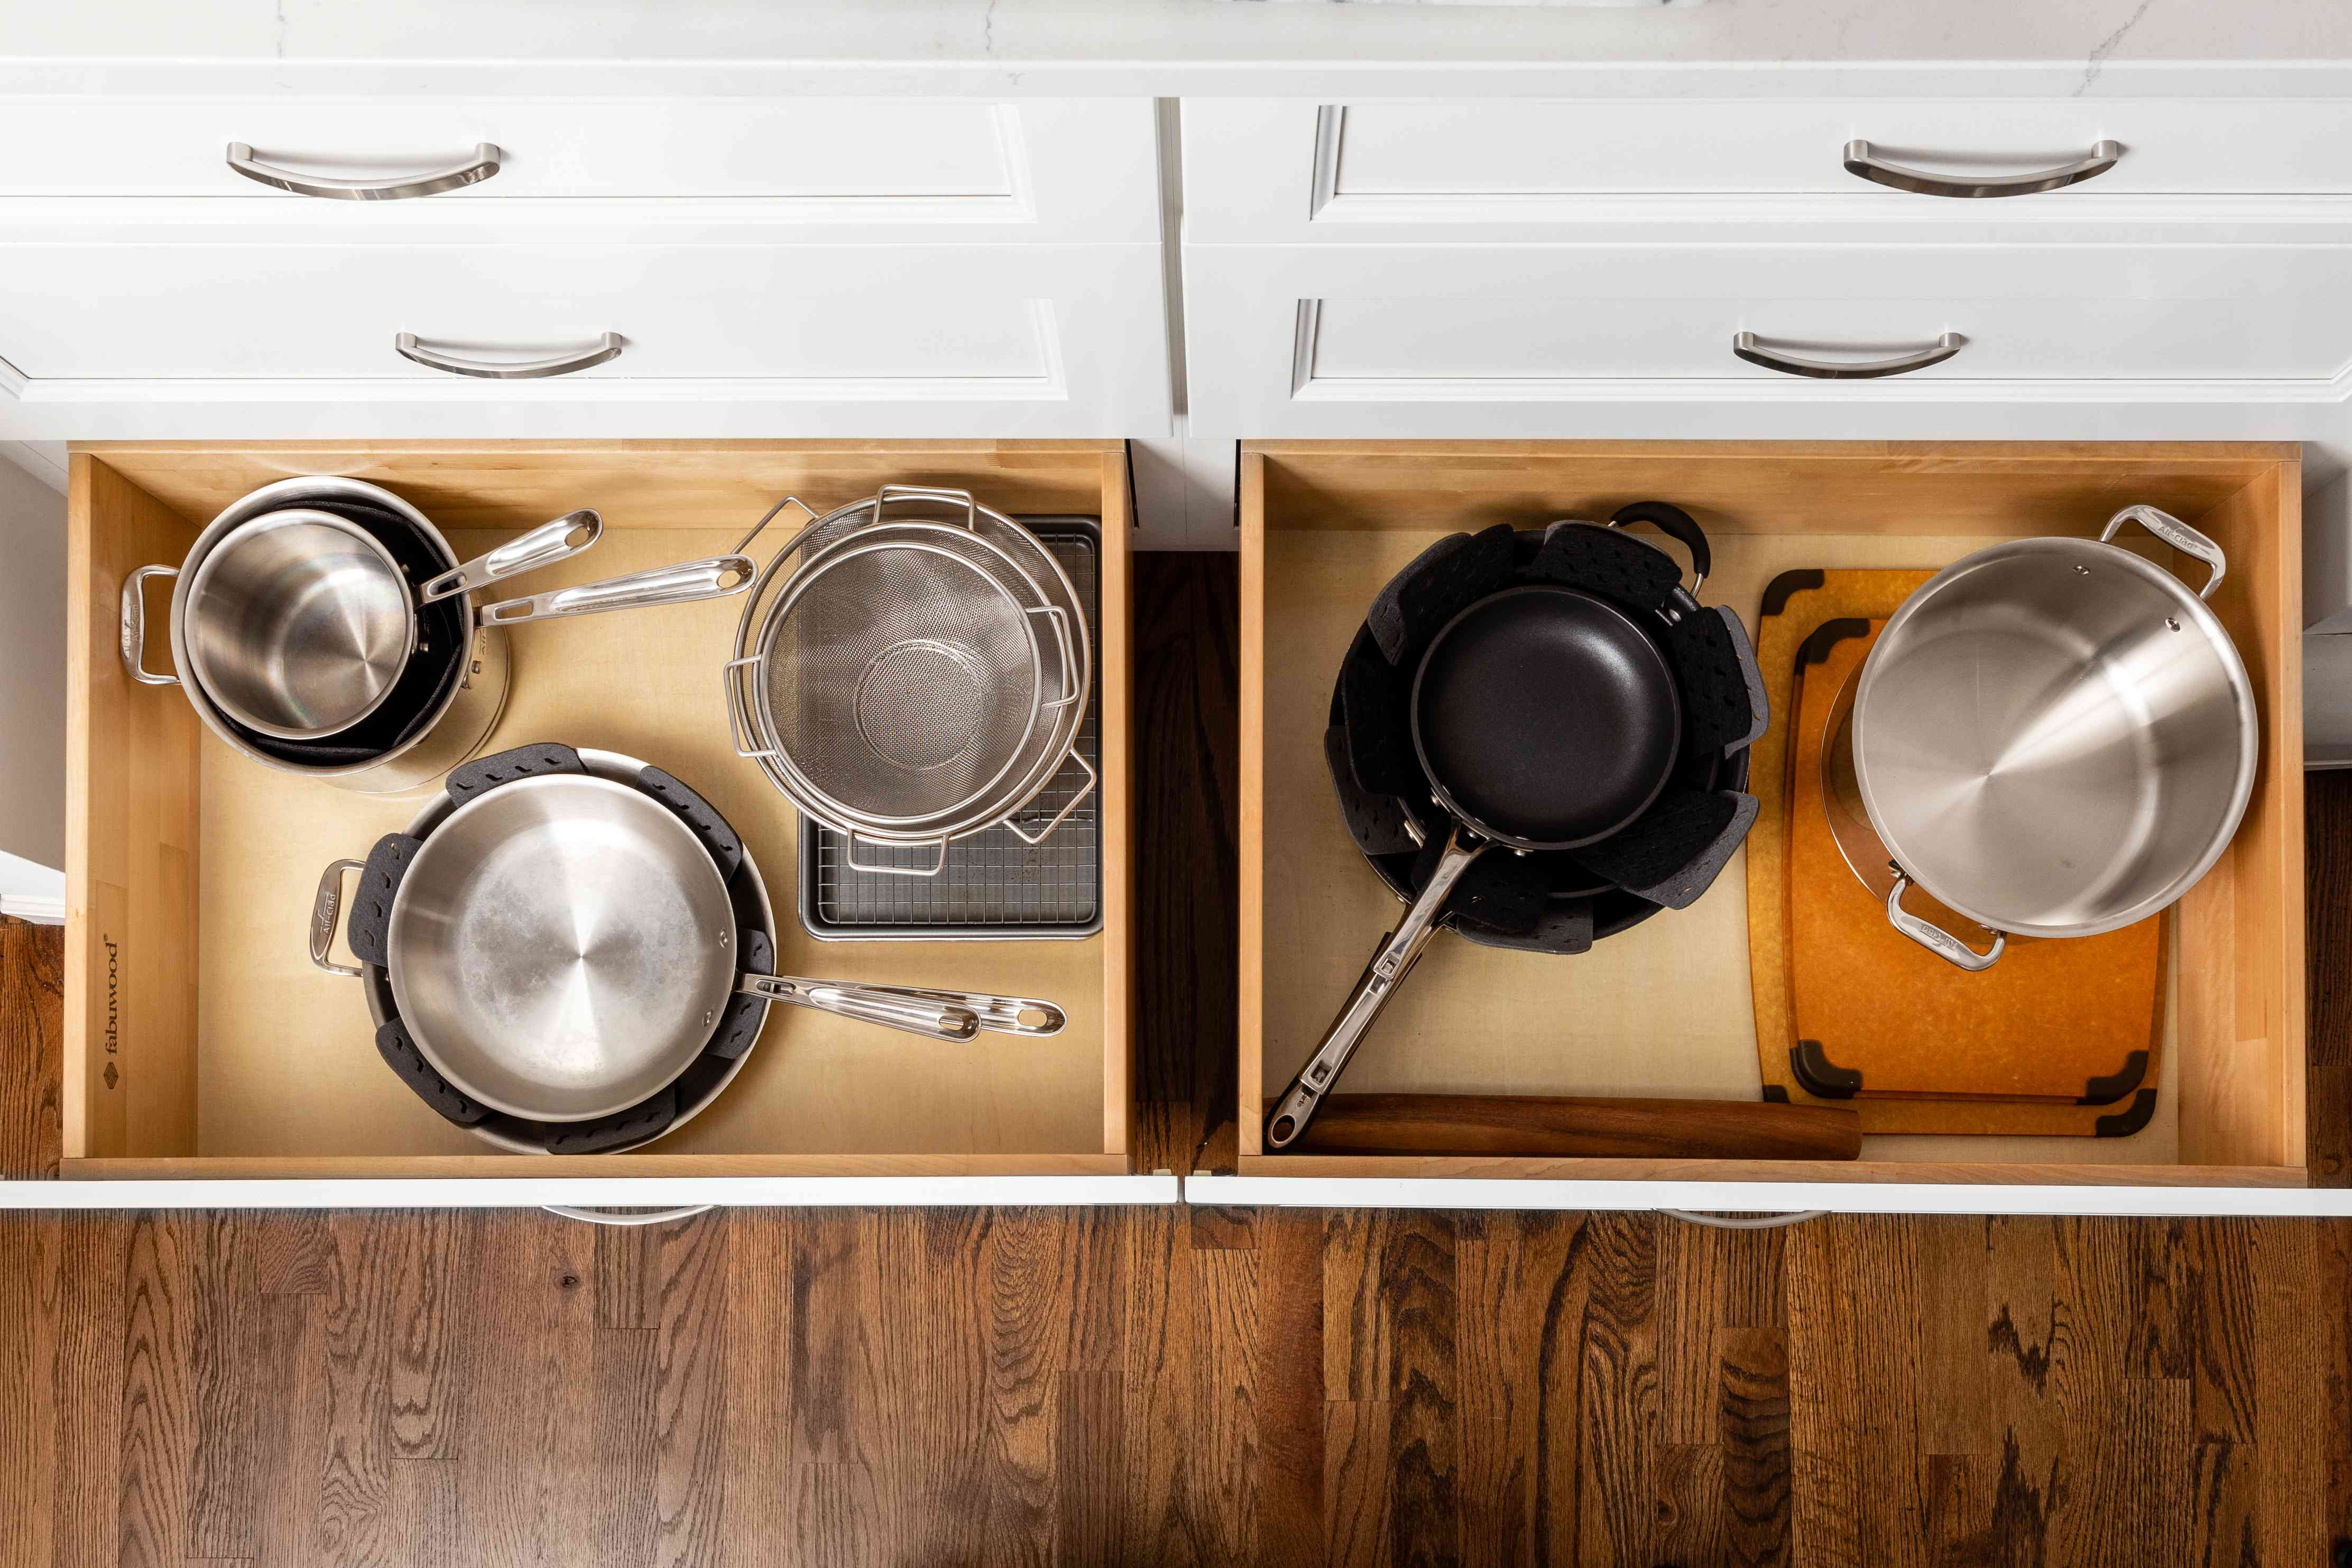 pots in drawers